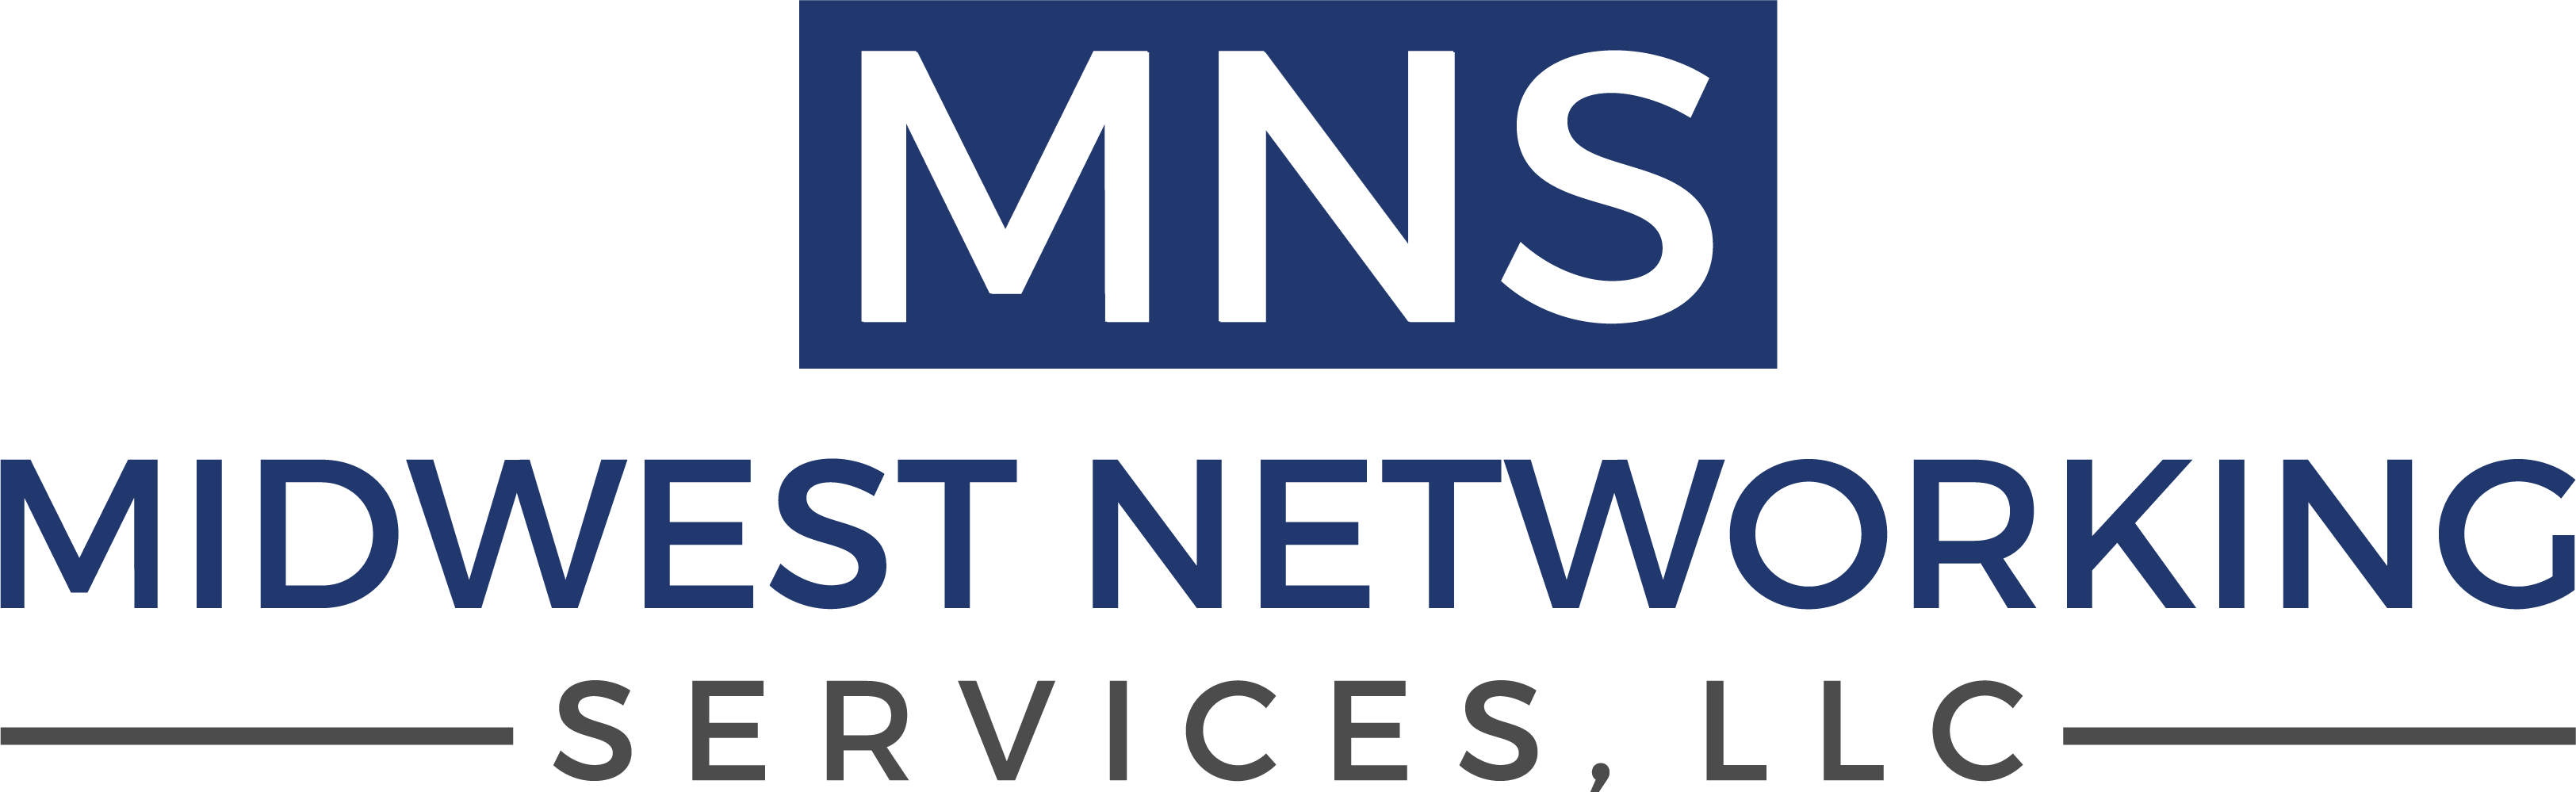 Midwest Networking Services, LLC Top Rated Company on 10Hostings